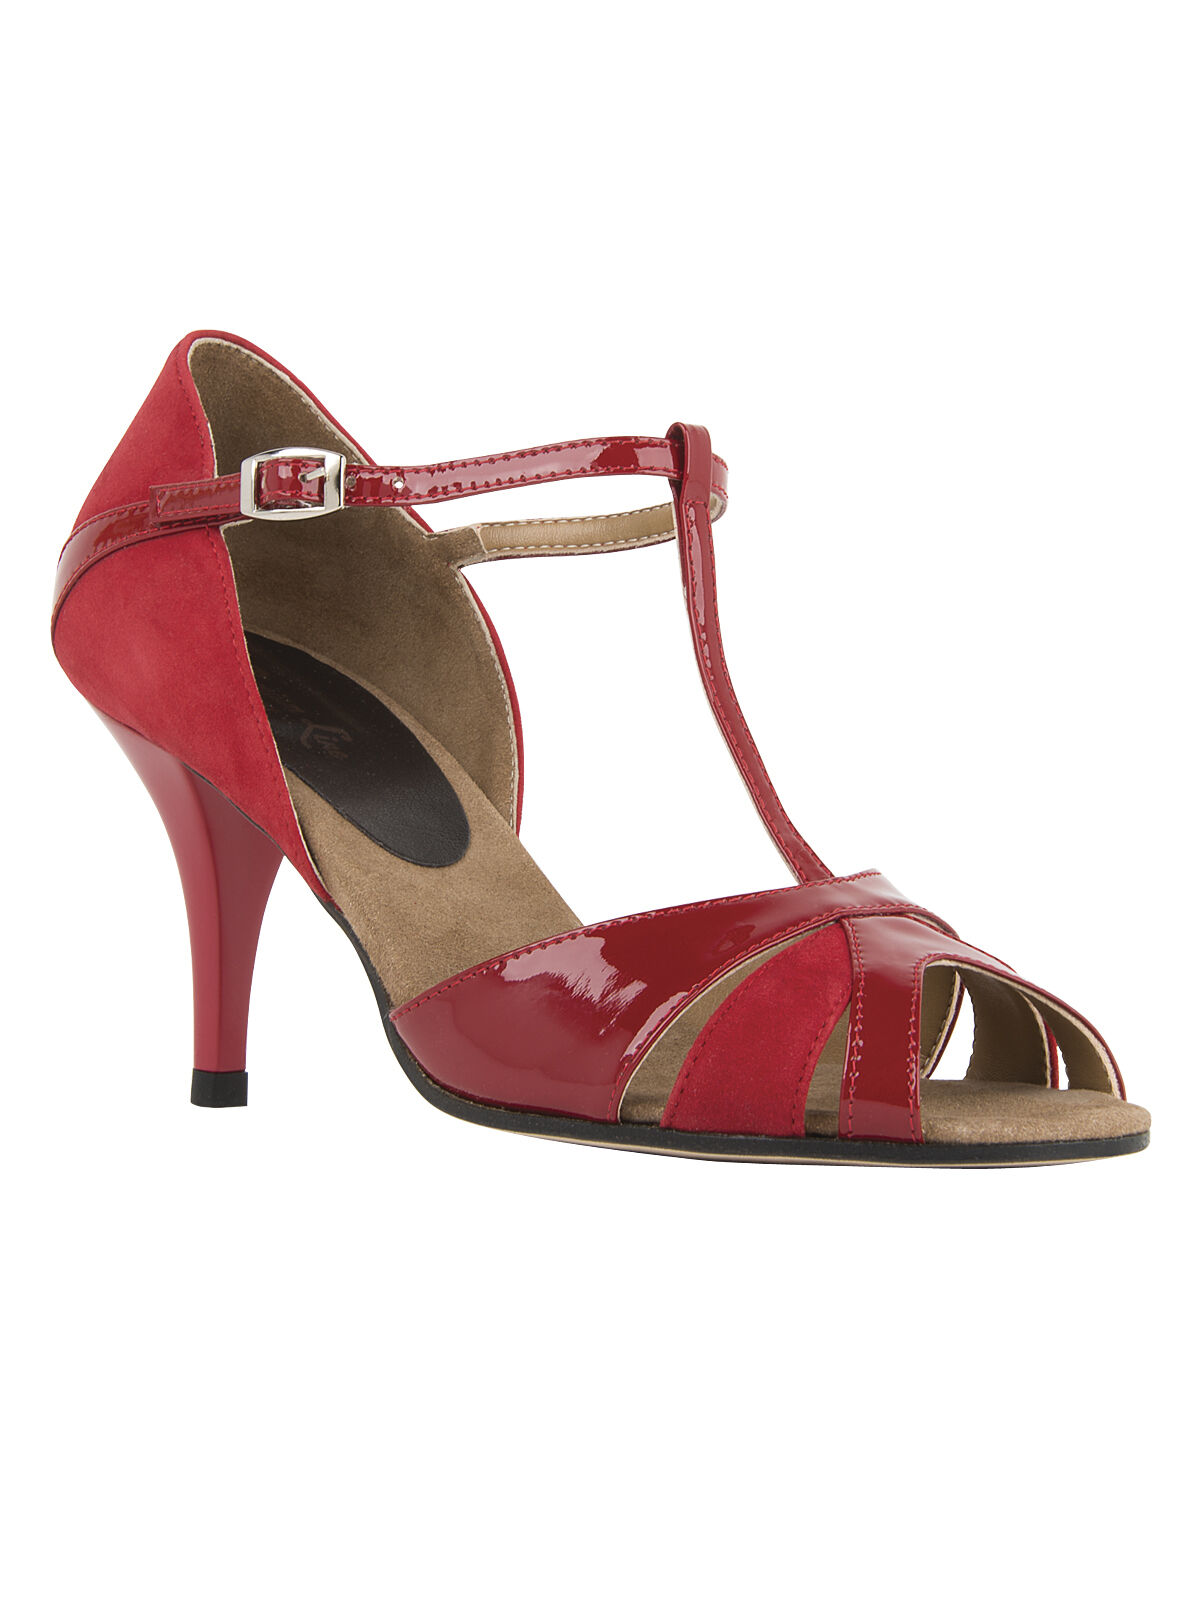 Hull 9155 daSie Leather Tango Salsa Latin Dance schuhe T-Strap rot ABS. 7,5cm